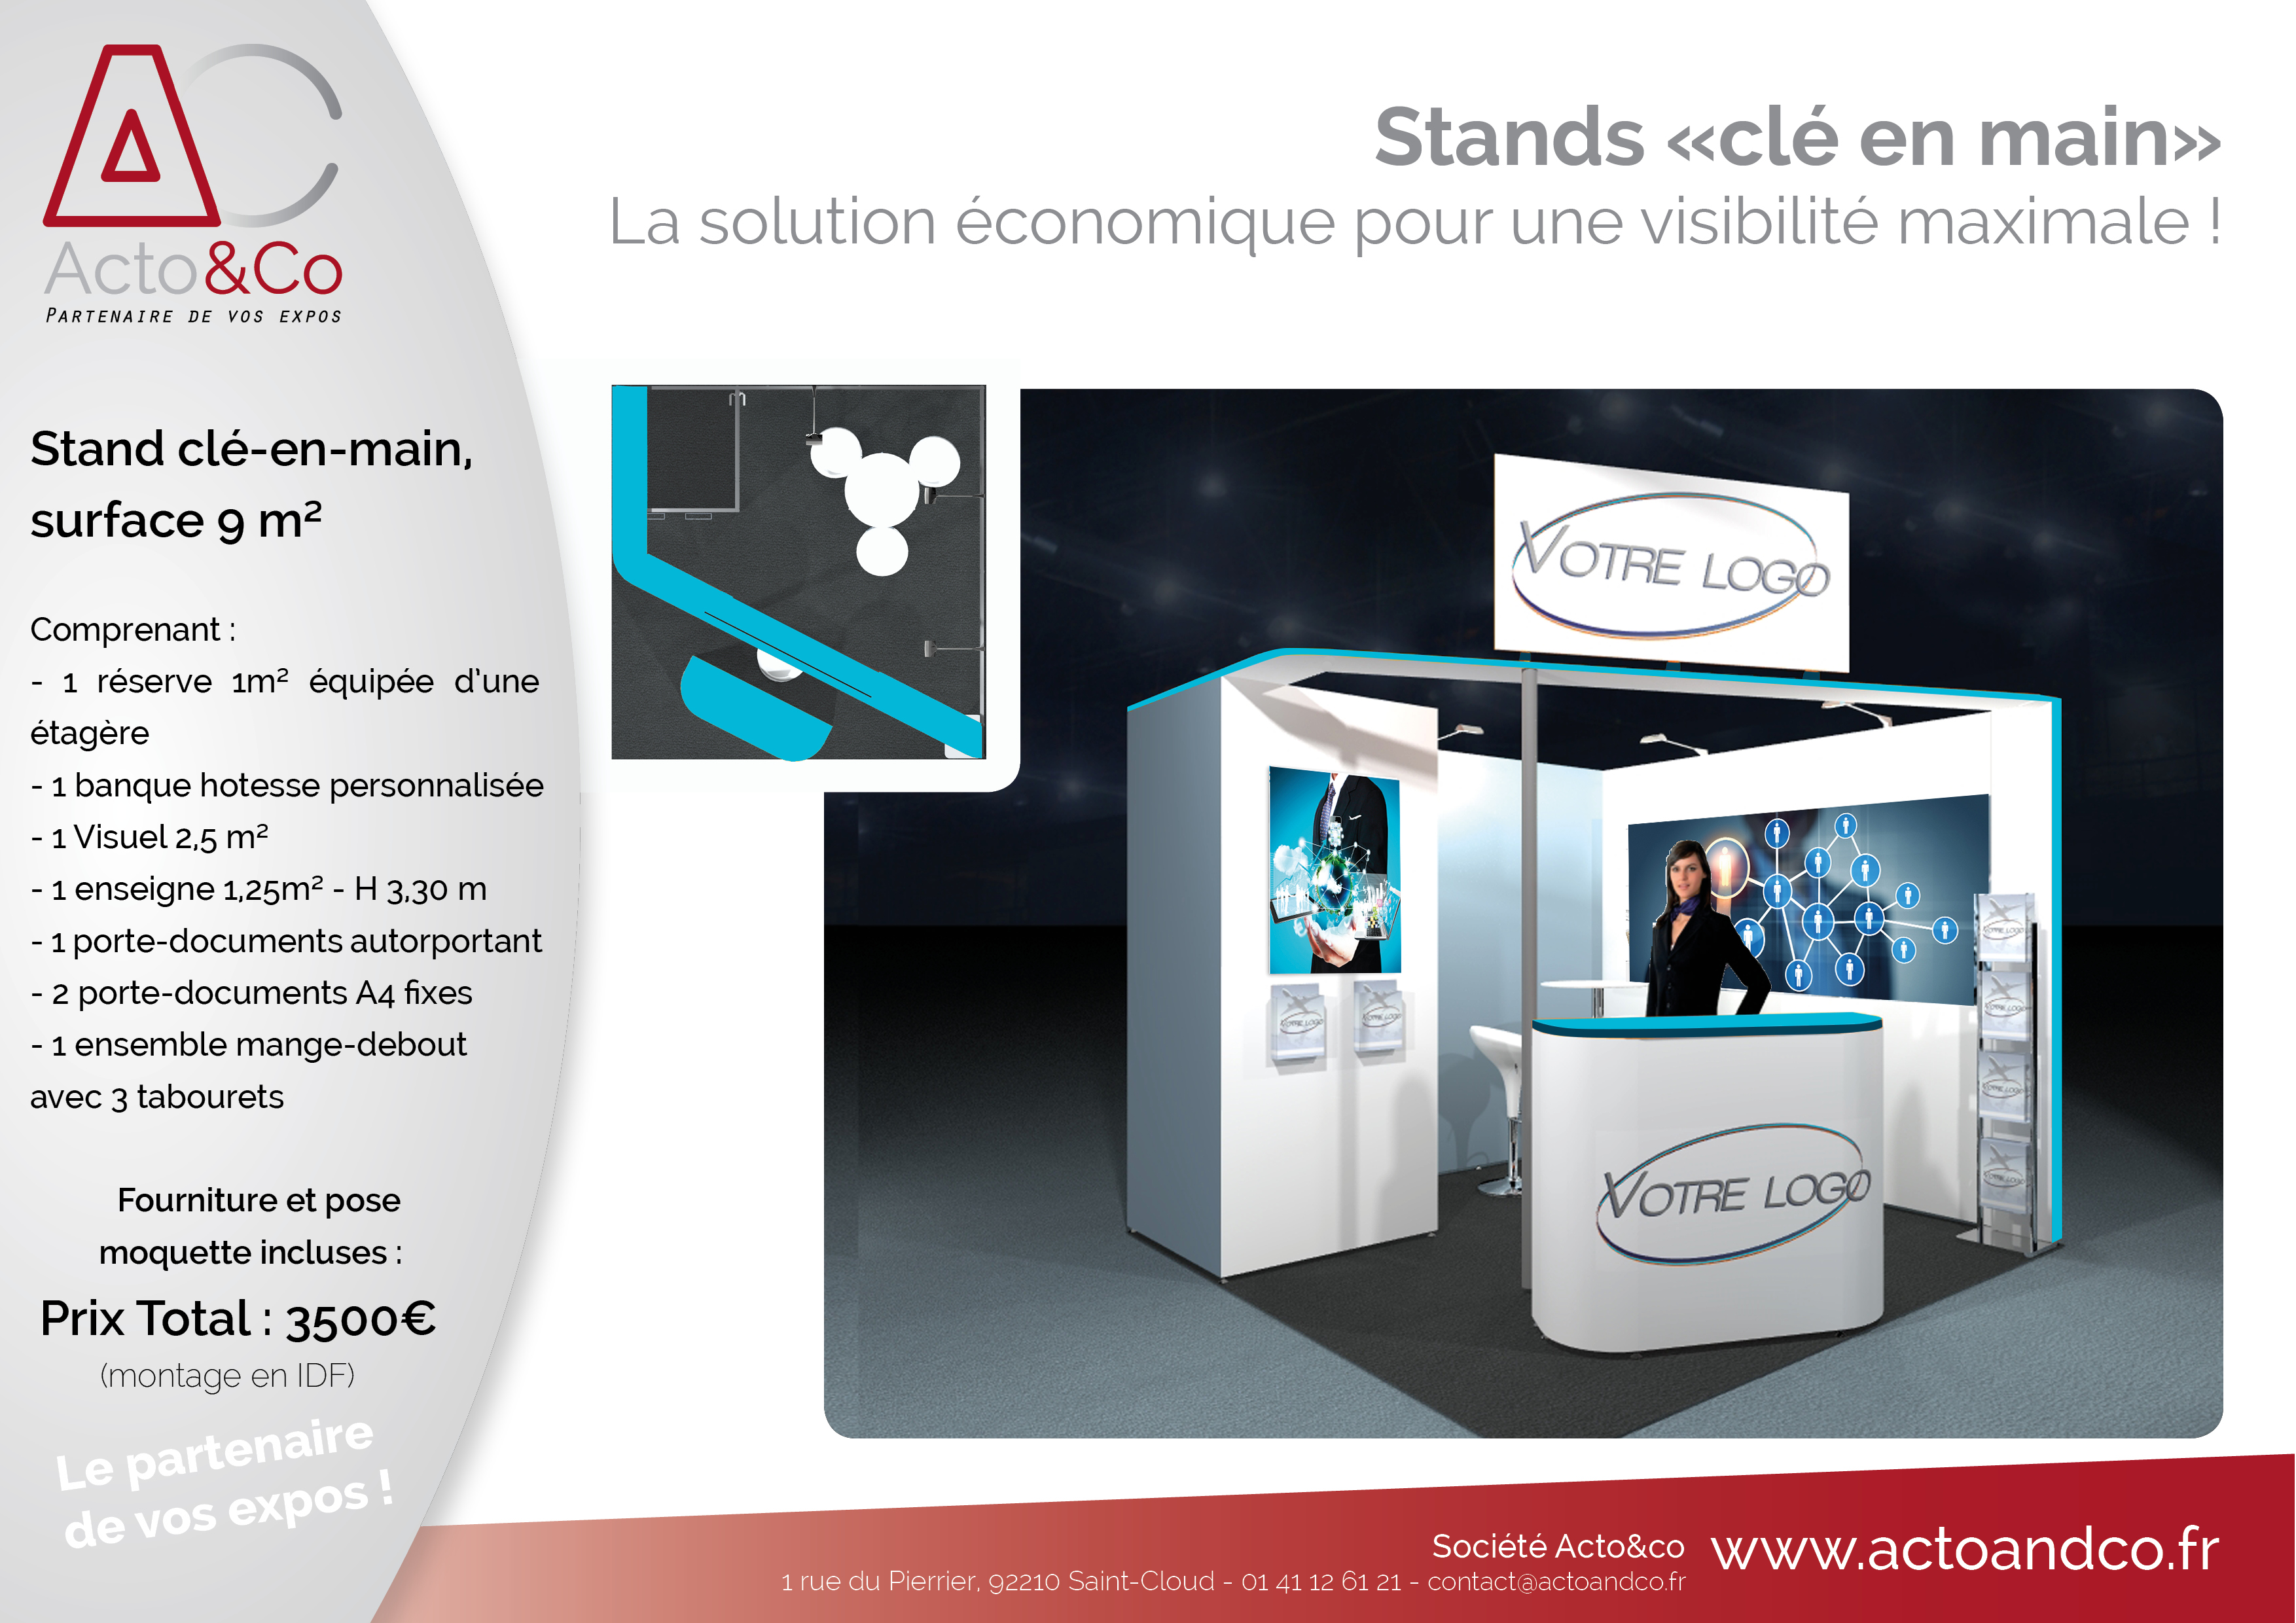 Stand cle en main 9m²